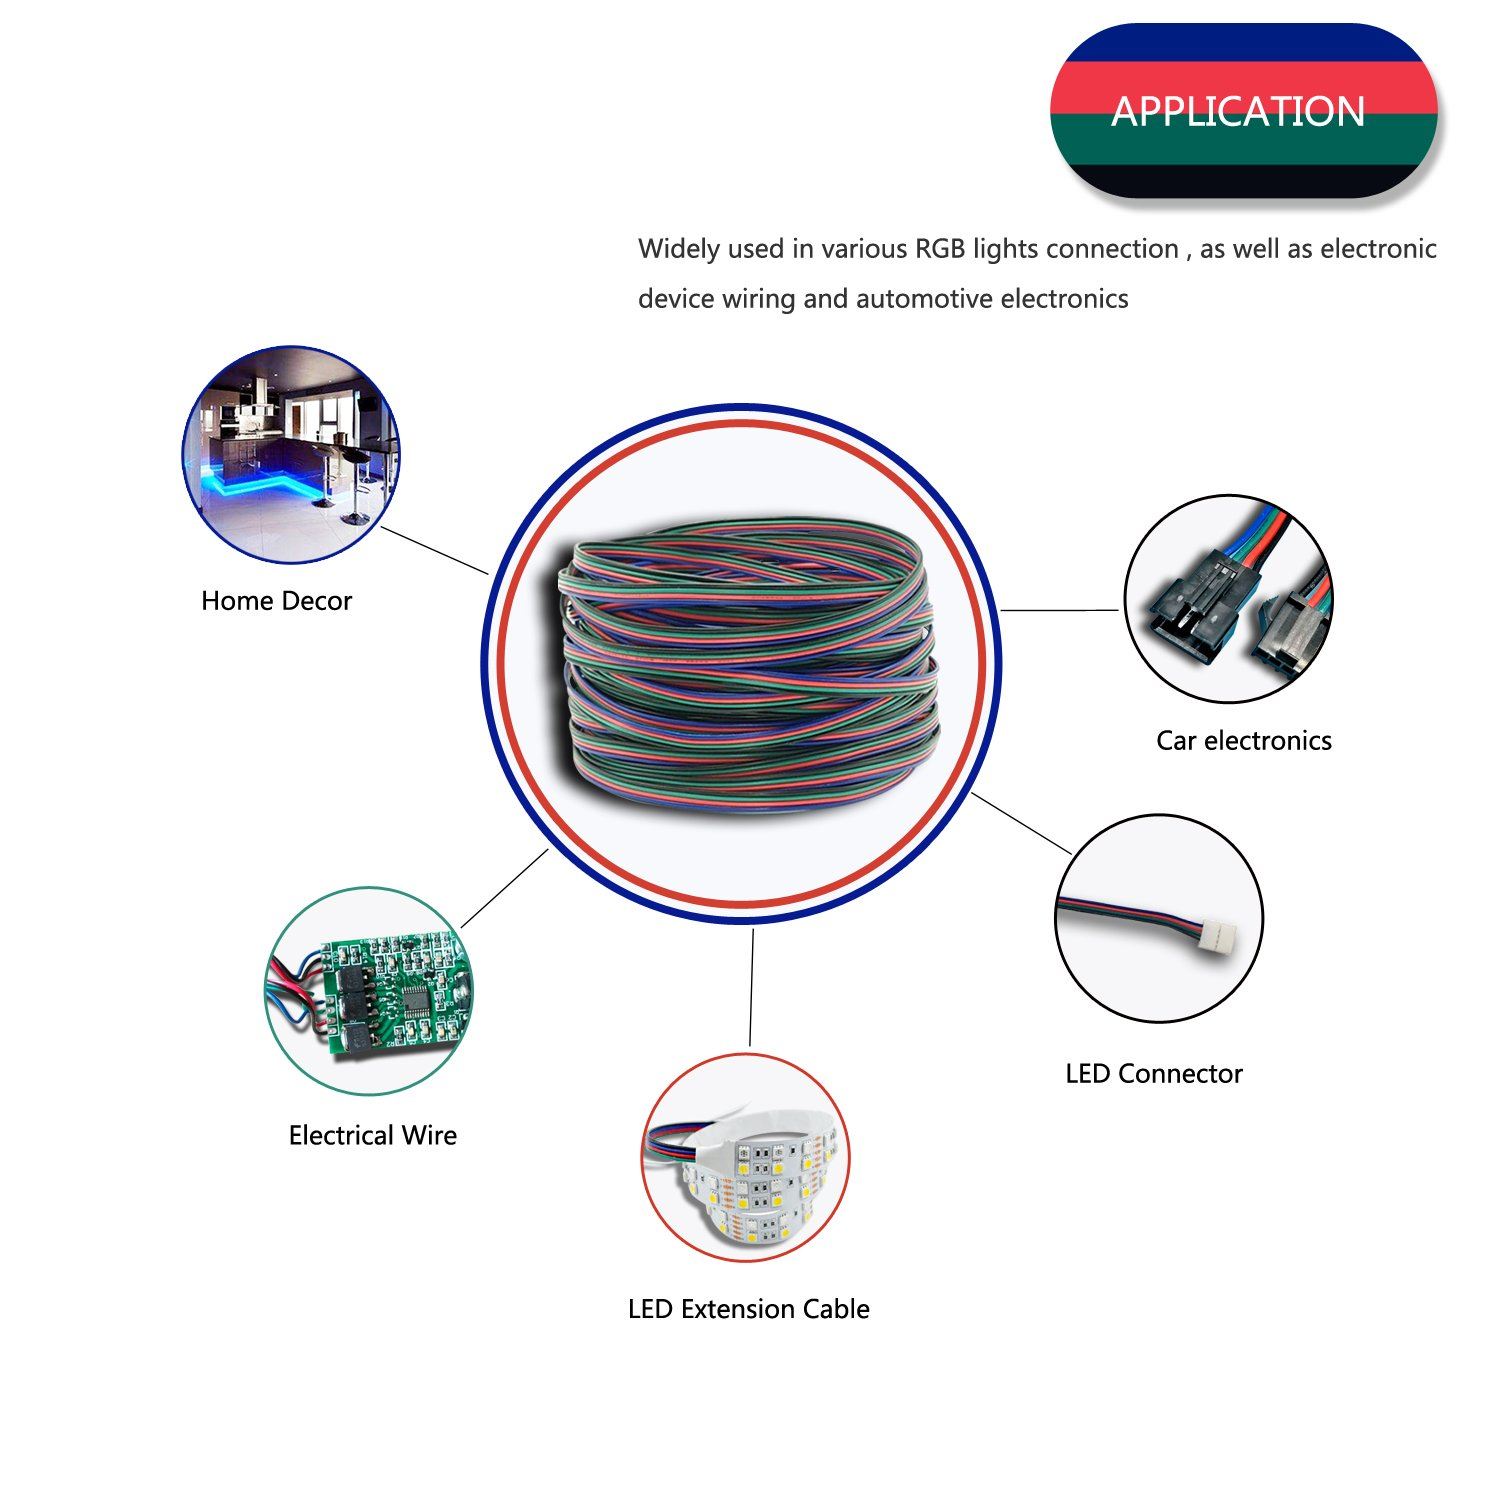 Rgb Connection Diagram Electrical Wiring Diagrams Light Led Connector Pattern 49 21ft 15m Extension Cable